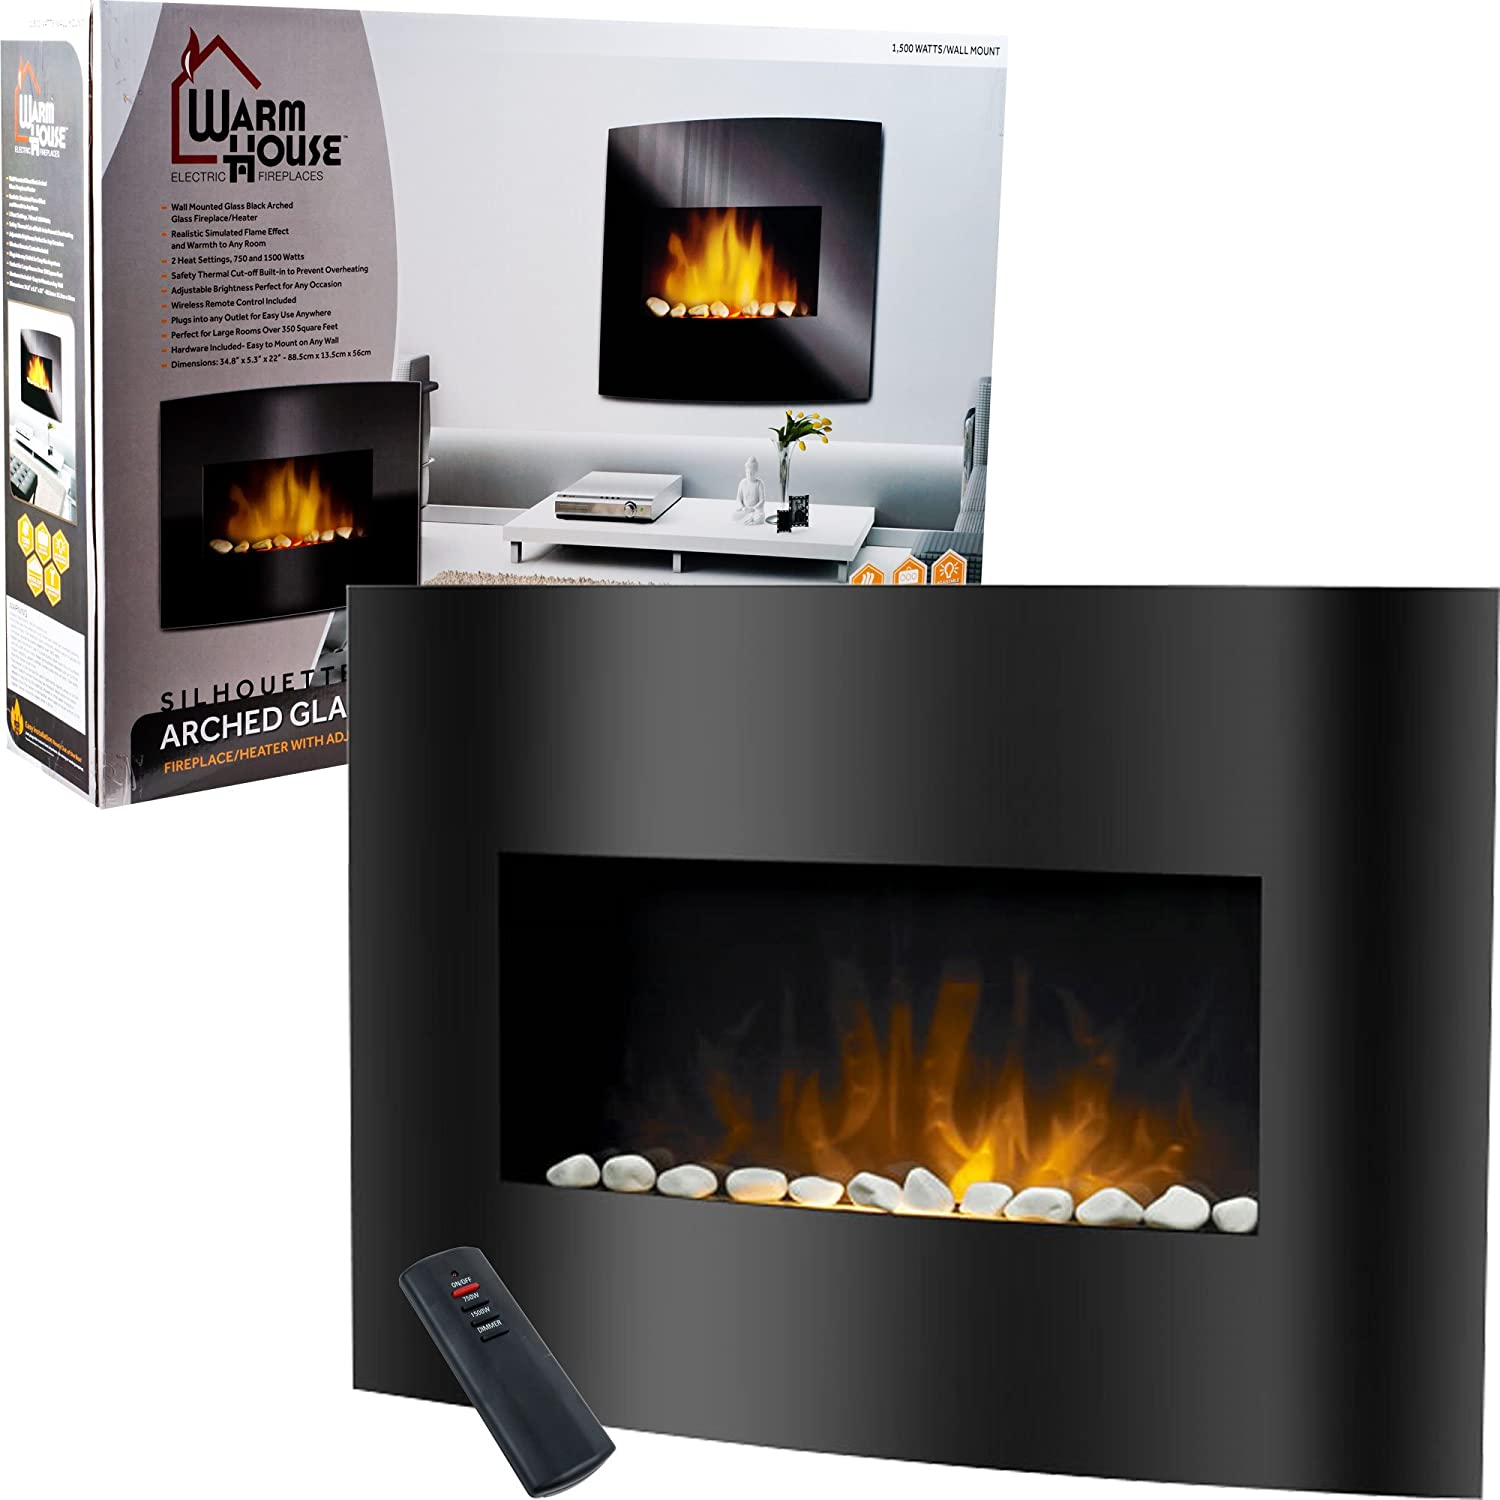 Amazon.com: Warm House Black Arched Glass Electric Fireplace: Kitchen & Dining